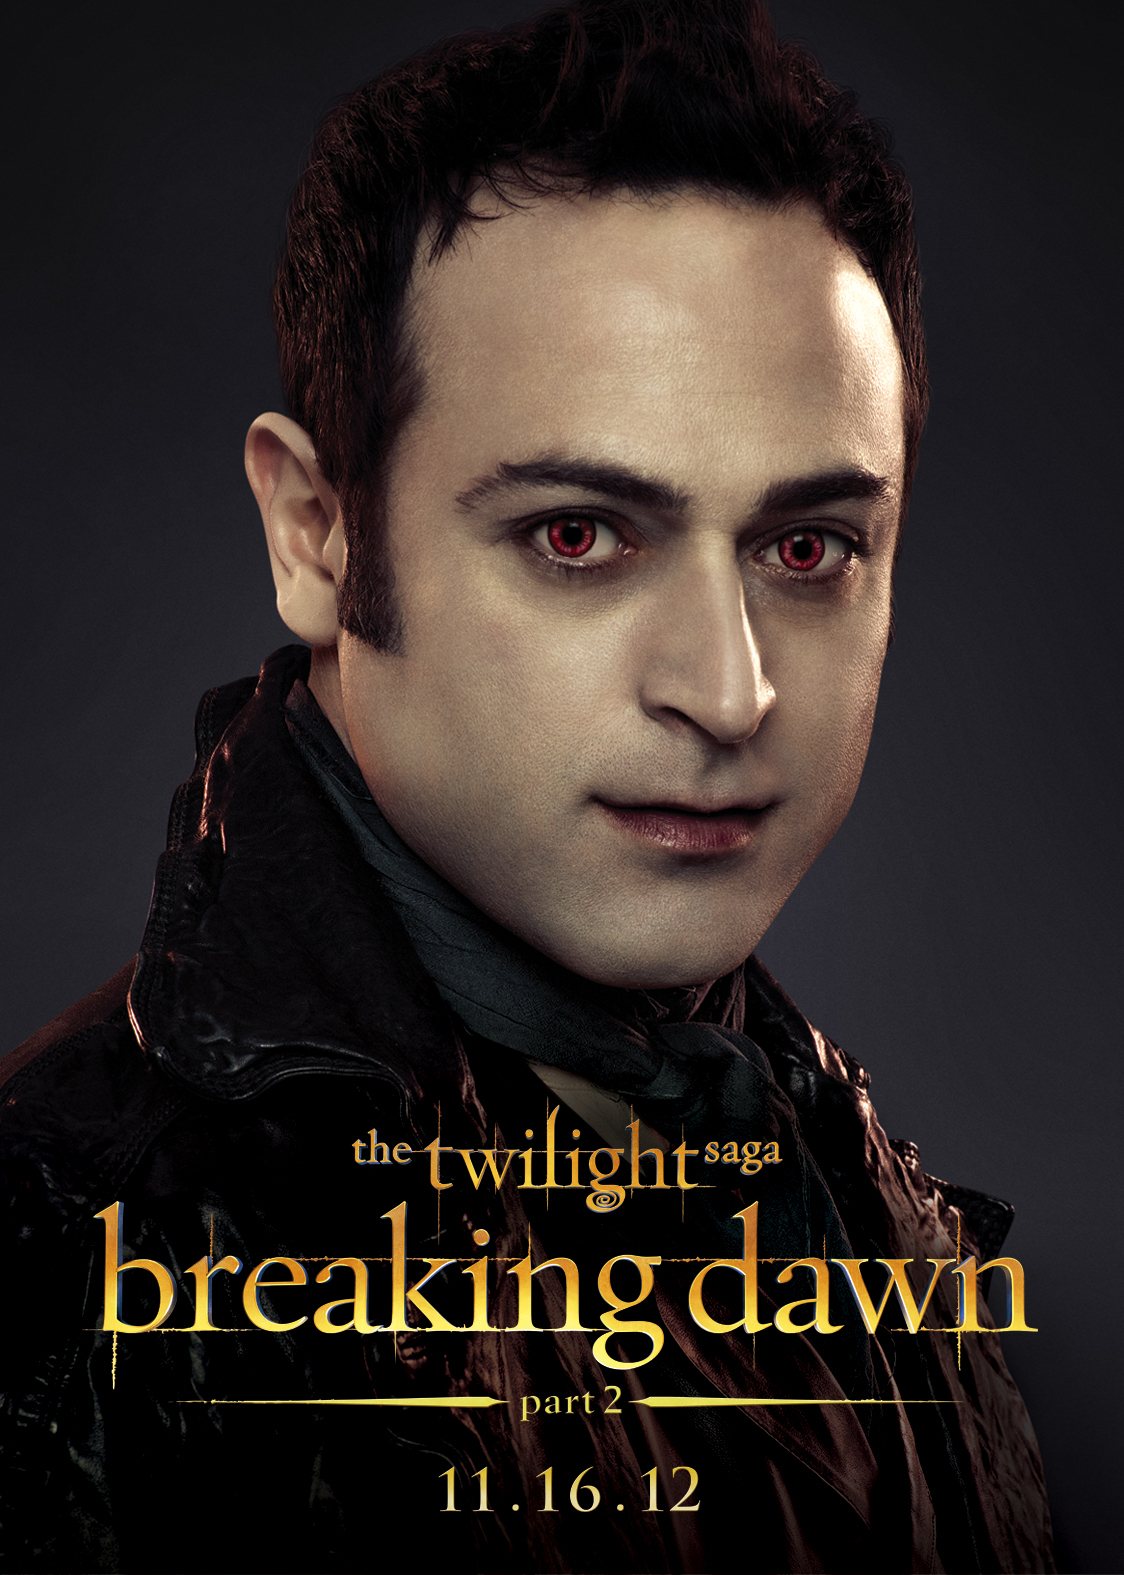 Twilight_Breaking_Dawn_Guri_